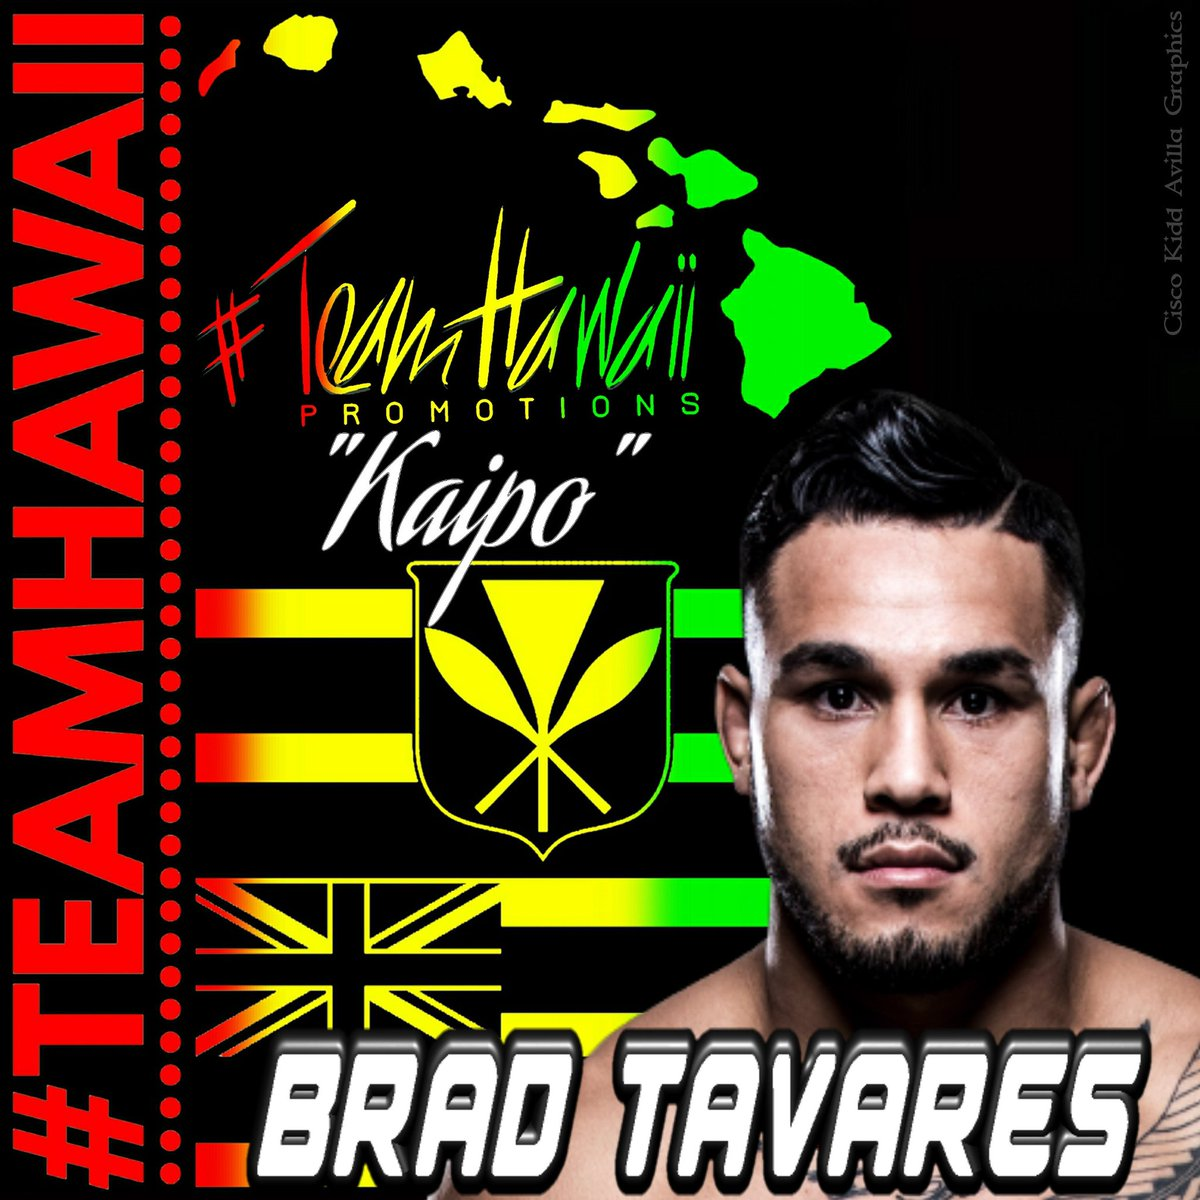 Retweet & show your support for @BradTavares today at #UFCGlendale! #TeamHawaii